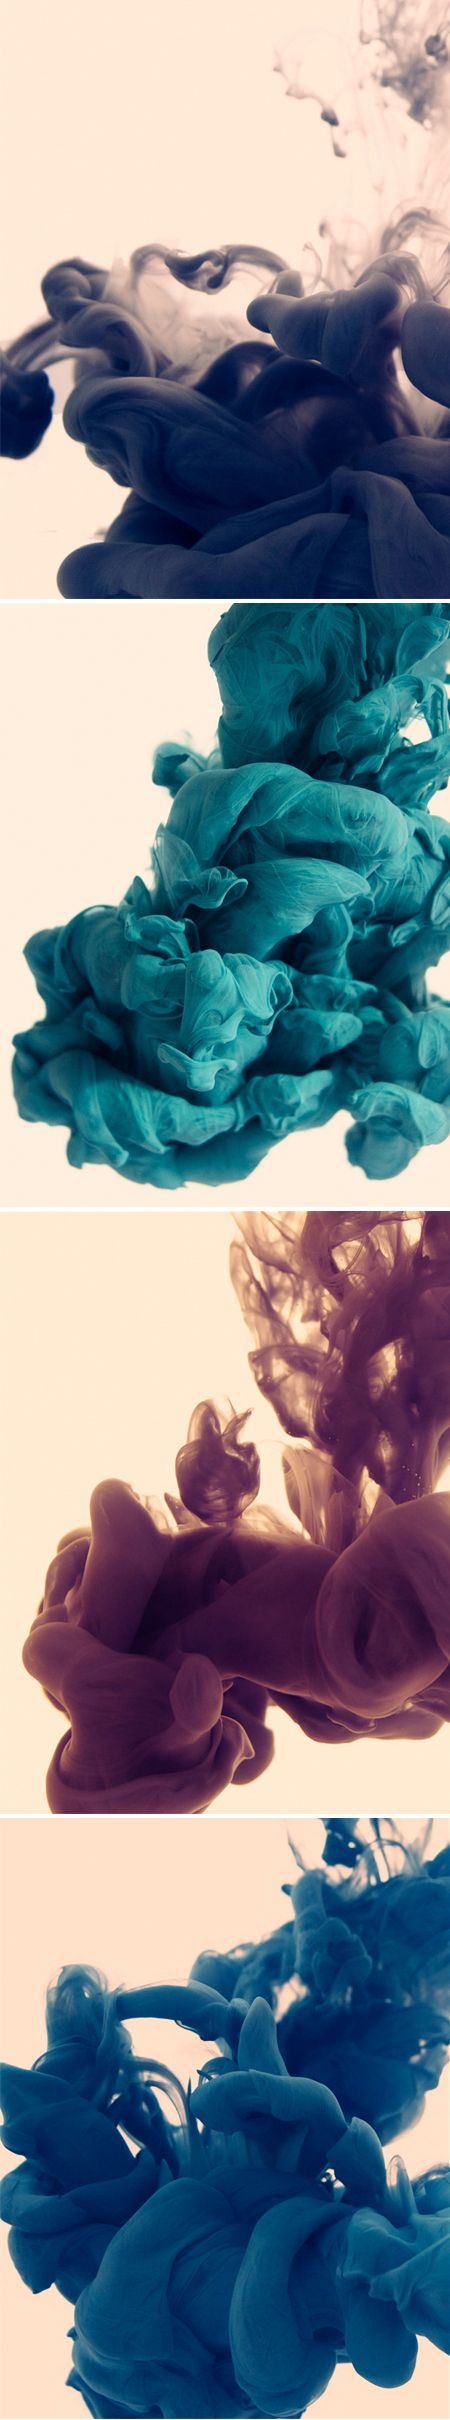 Photographs of ink in water by Alberto Seveso / Fall color inspiration